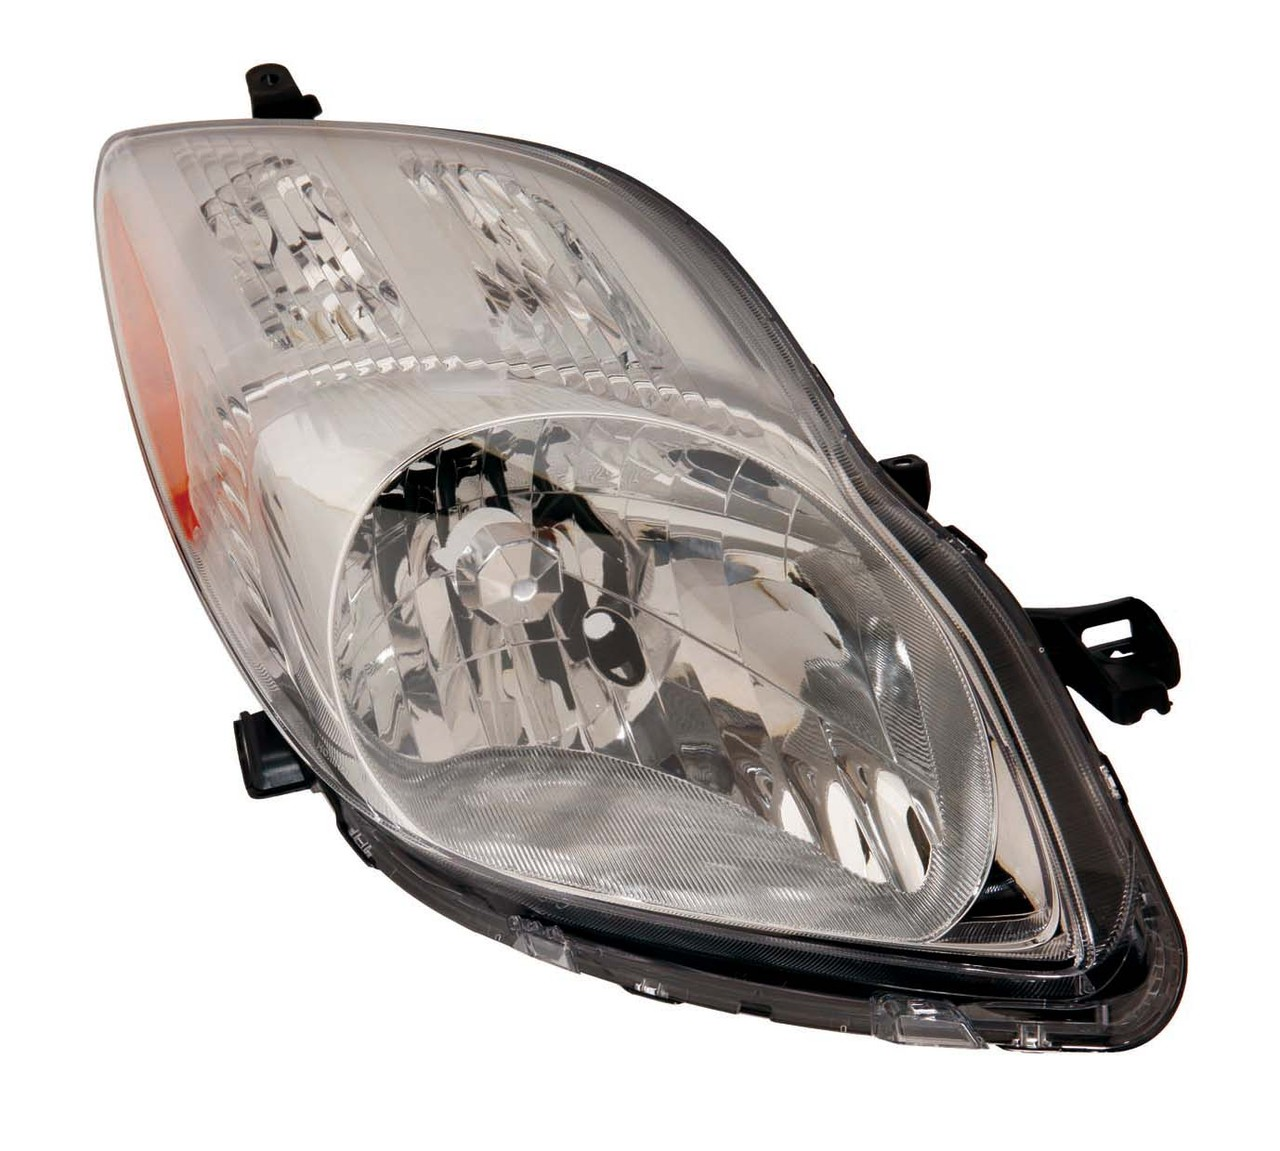 Toyota Yaris hatchback 2009 2010 2011 right passenger headlight